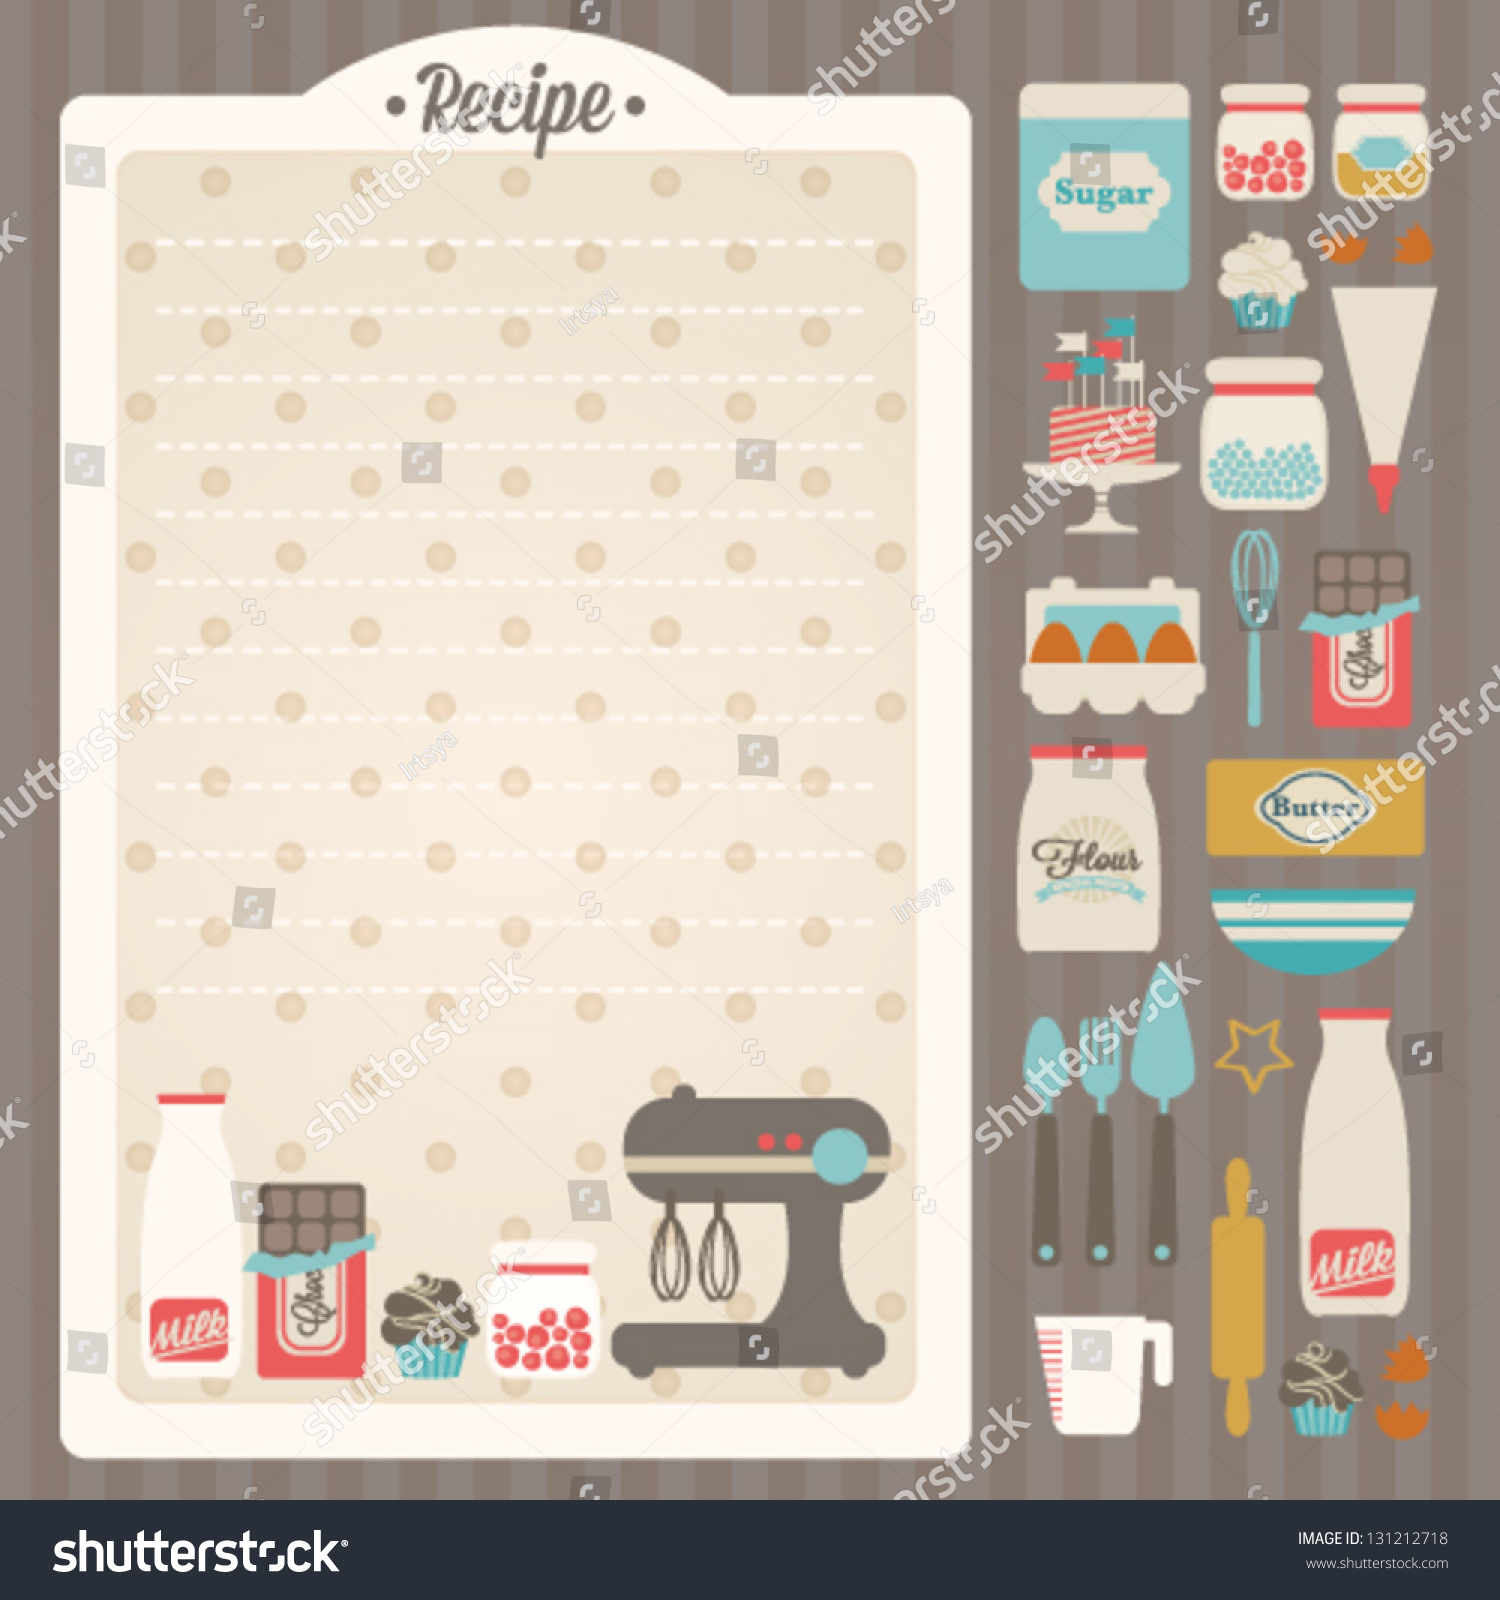 Sweet Recipe Vector Card Template Kitchen Stock Vector 131212718 ...